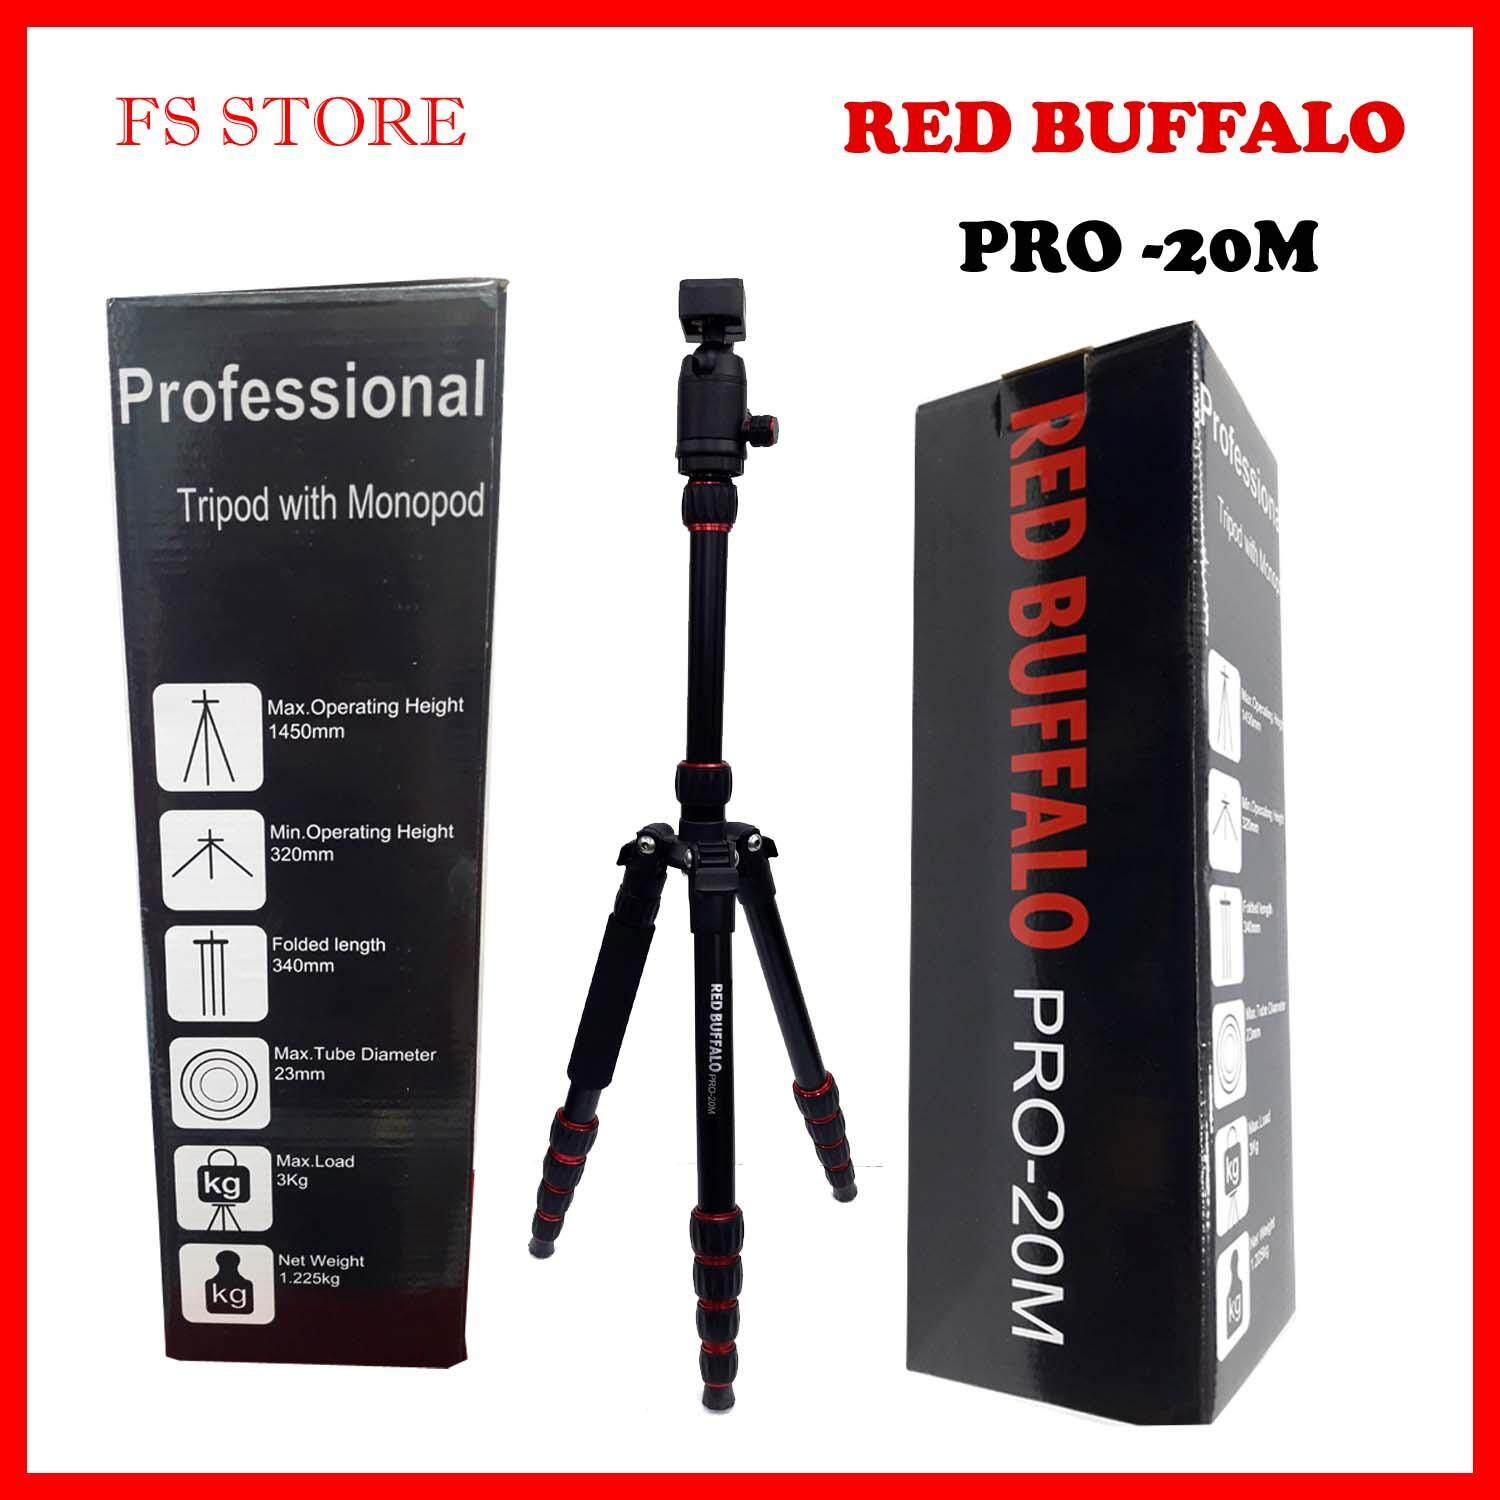 Tripods For The Best Price In Malaysia Tripod Somita St 3110 Professional Red Buffalo Pro 20m With Monopod